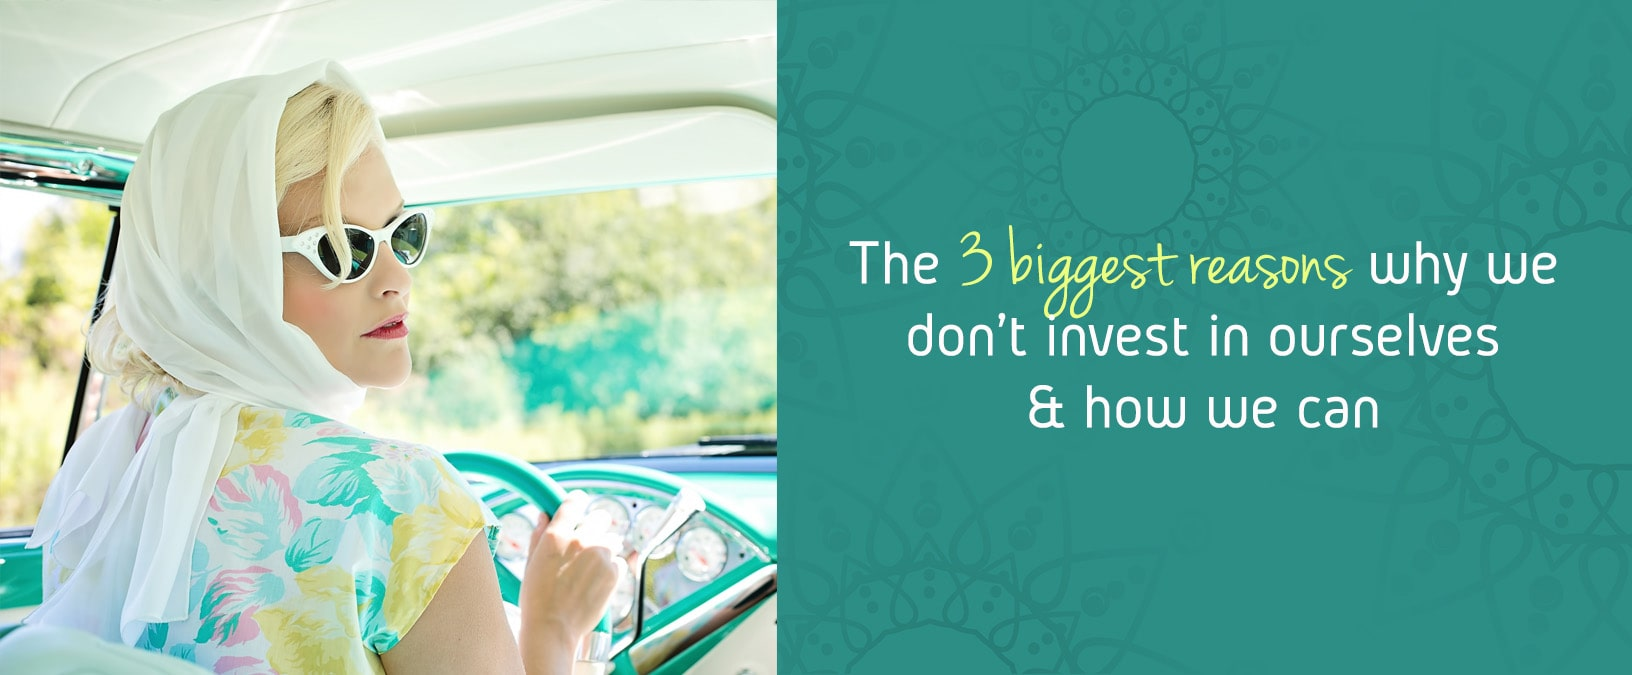 The 3 biggest reasons why we don't invest in ourselves & how we can